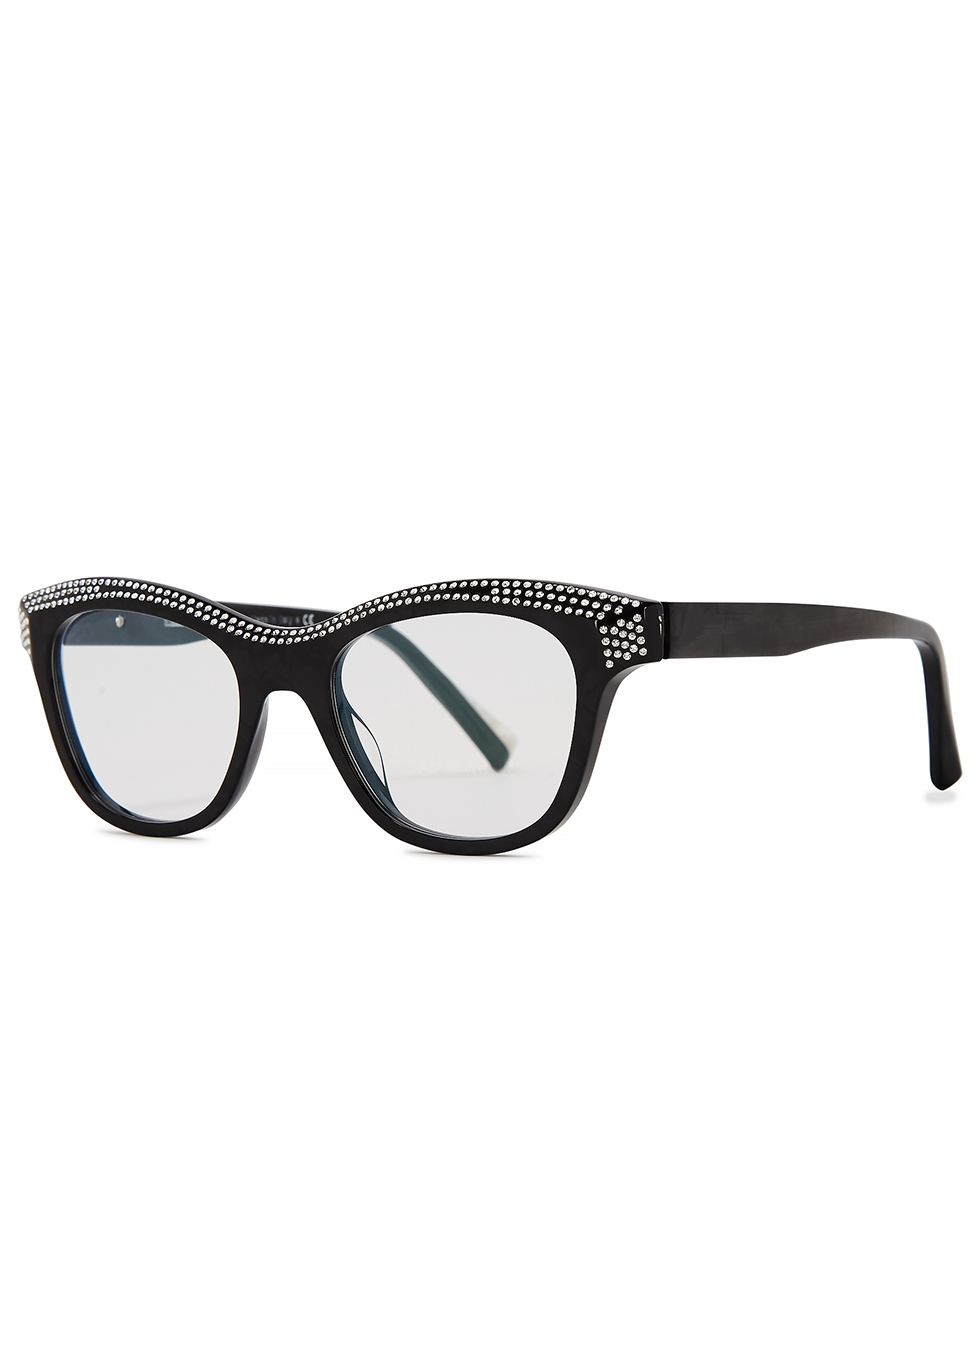 Loulette black wayfarer-style optical glasses